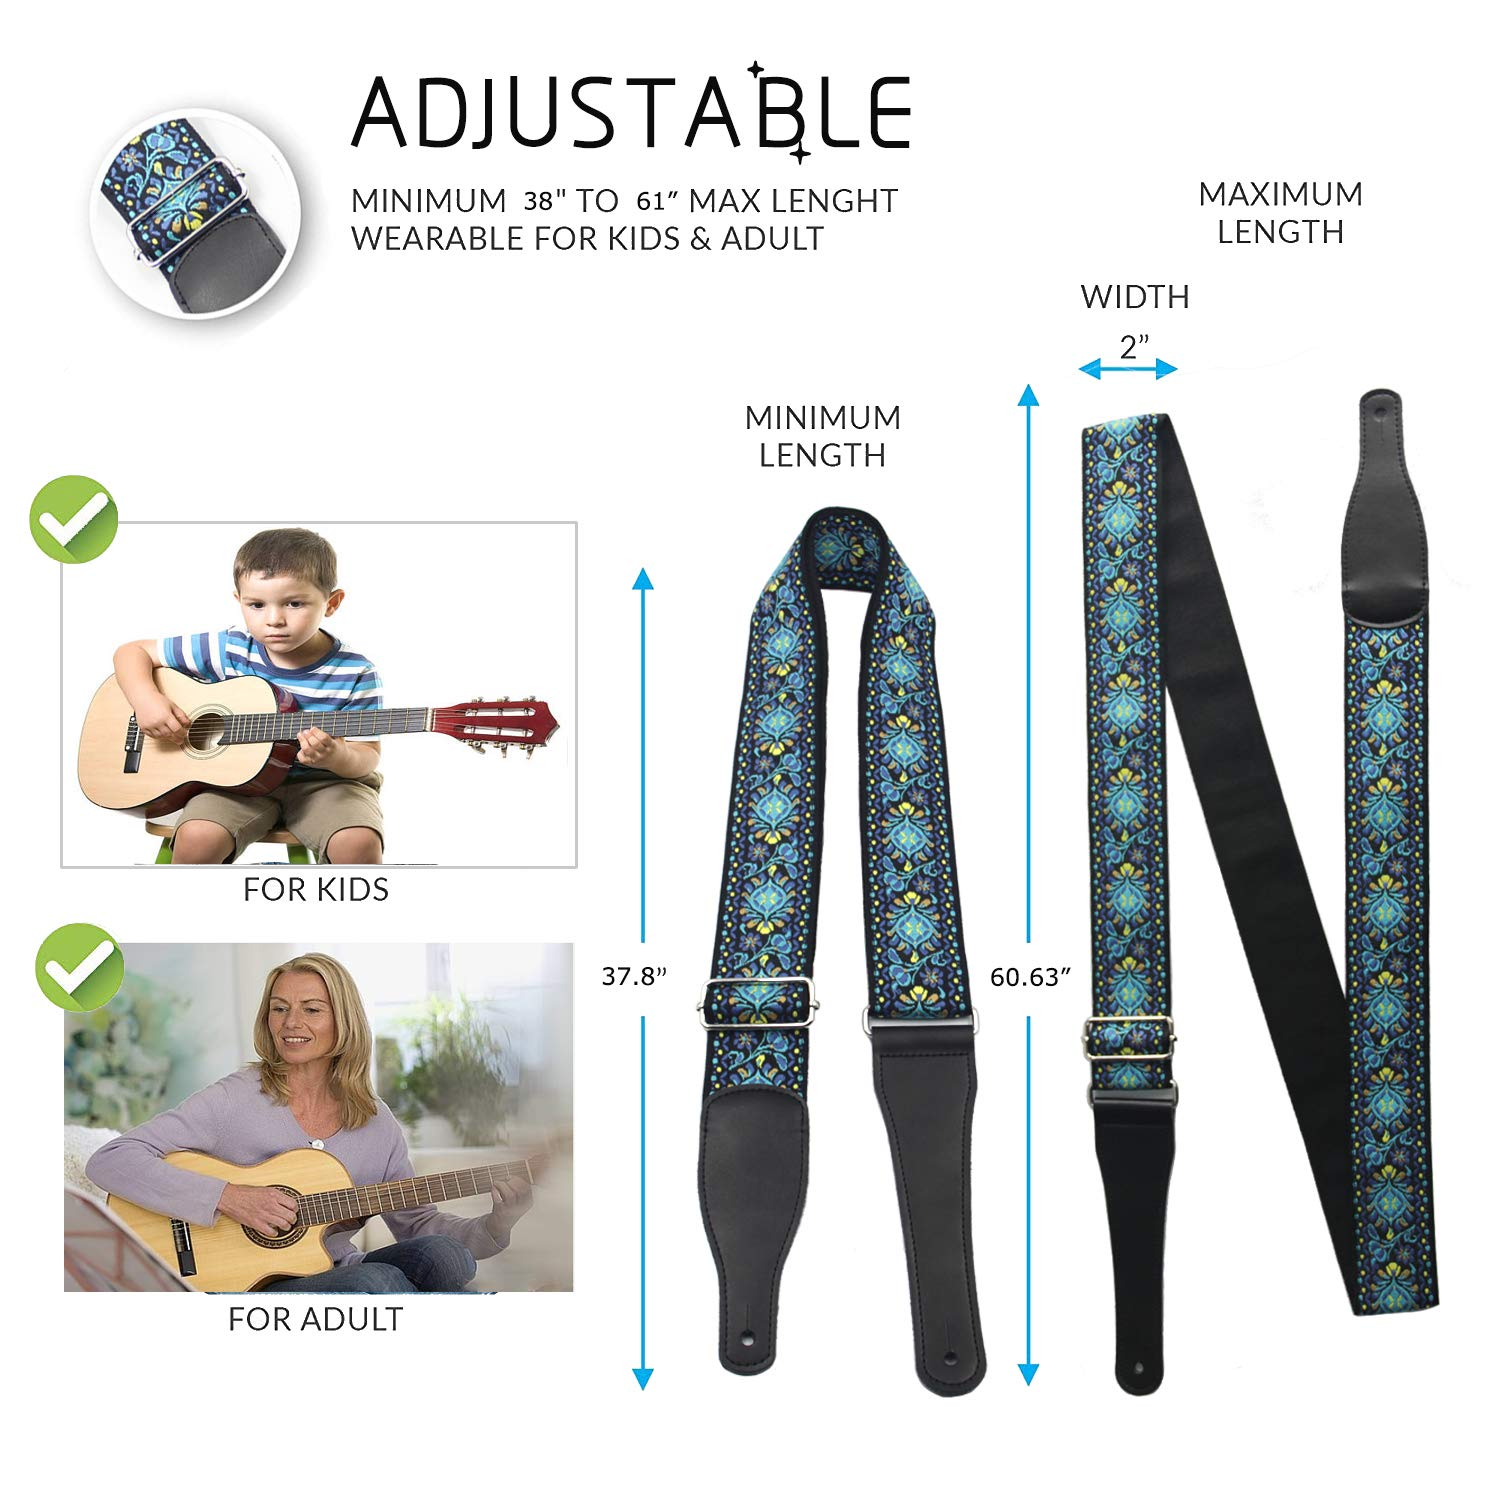 Acoustic Teal Bass Guitar Strap - FluTune 80s XL Cool Guitar Strap for Punk Guitar, Electric Guitar, Cool Guitar Strap with Lock and Buttons